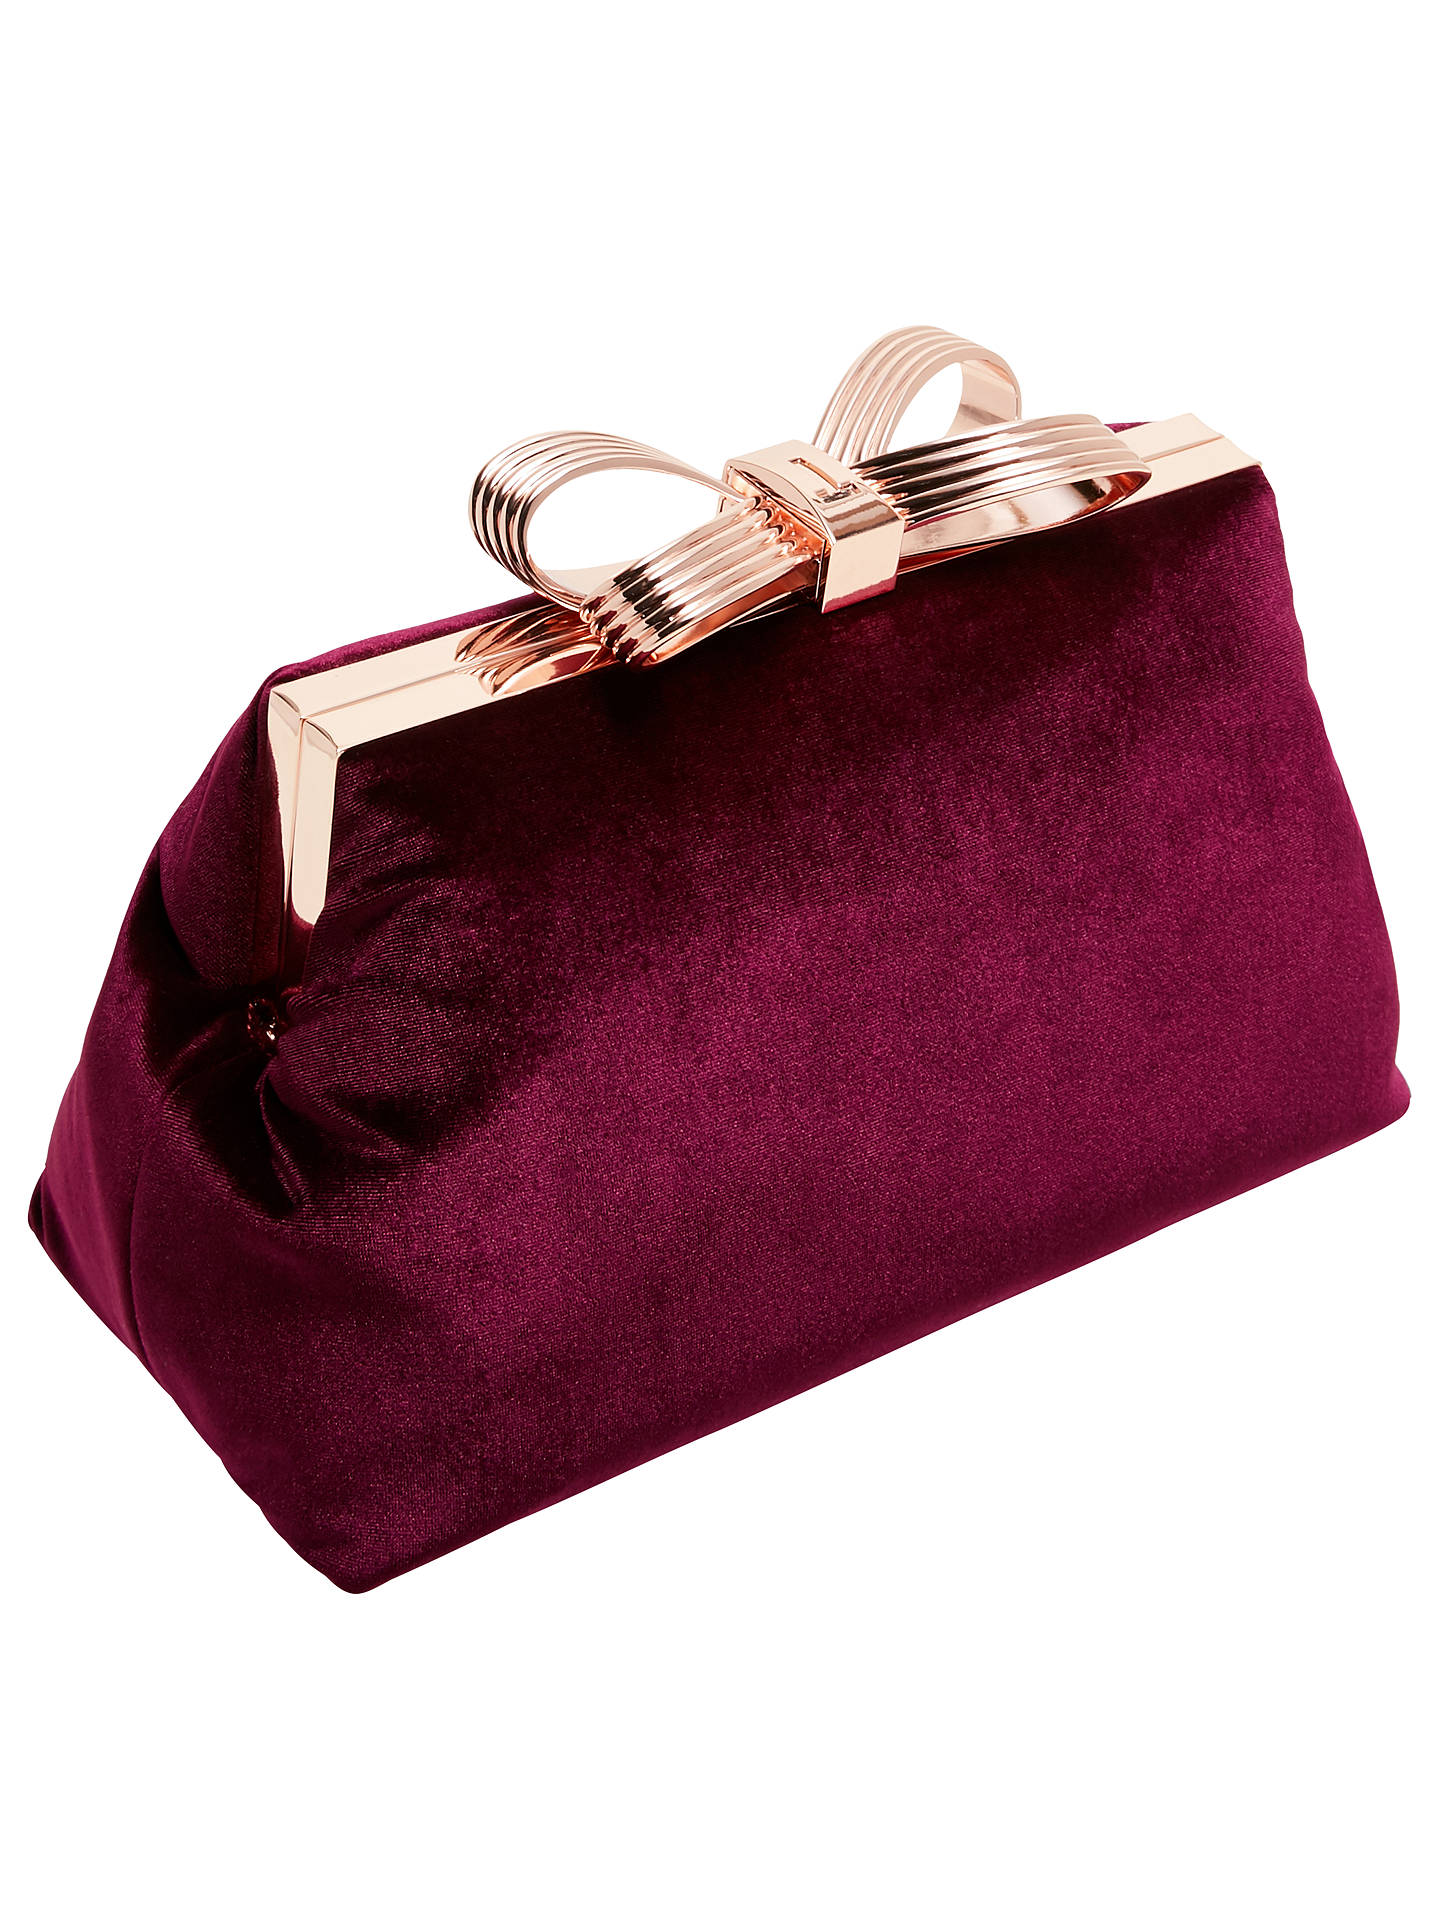 Buy Ted Baker Cena Bow Evening Clutch Bag, Oxblood Online at johnlewis.com